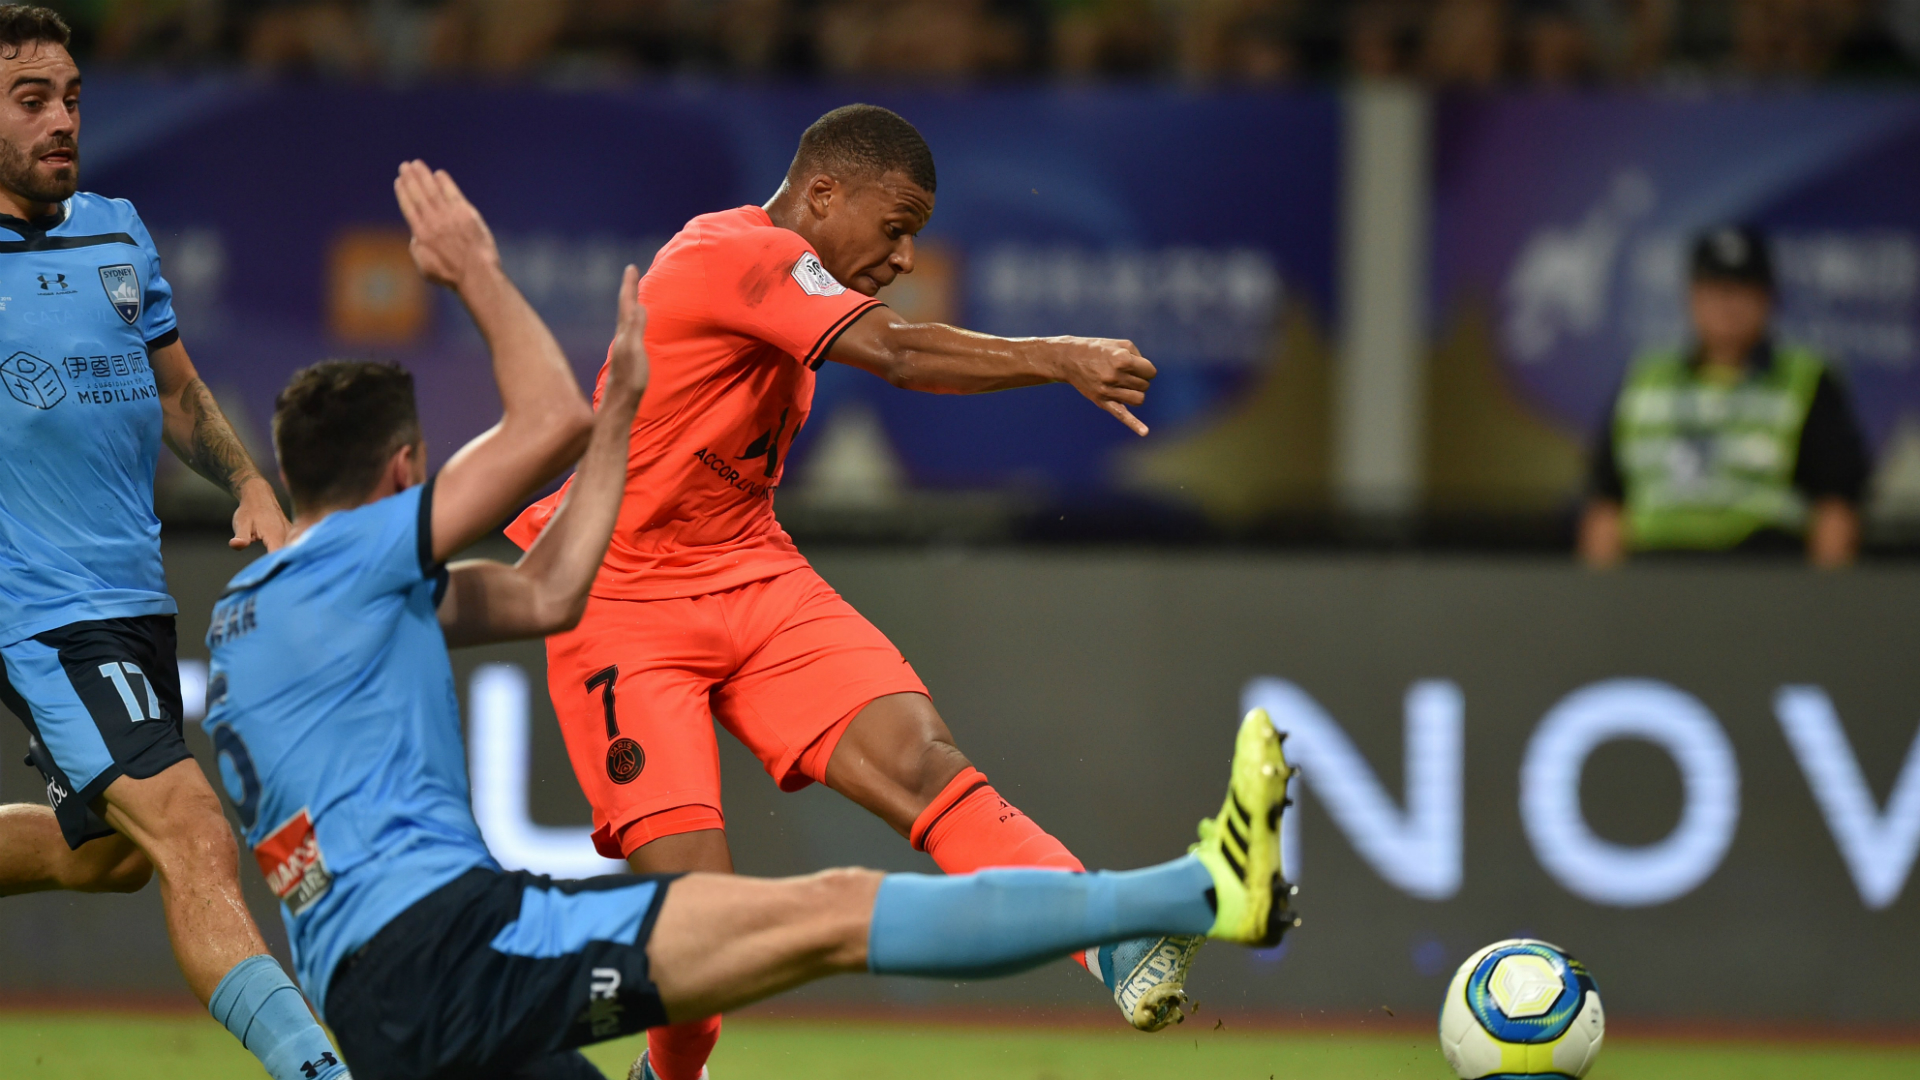 Paris Saint-Germain 3 Sydney FC 0: Mbappe, Cavani on target on hot China night